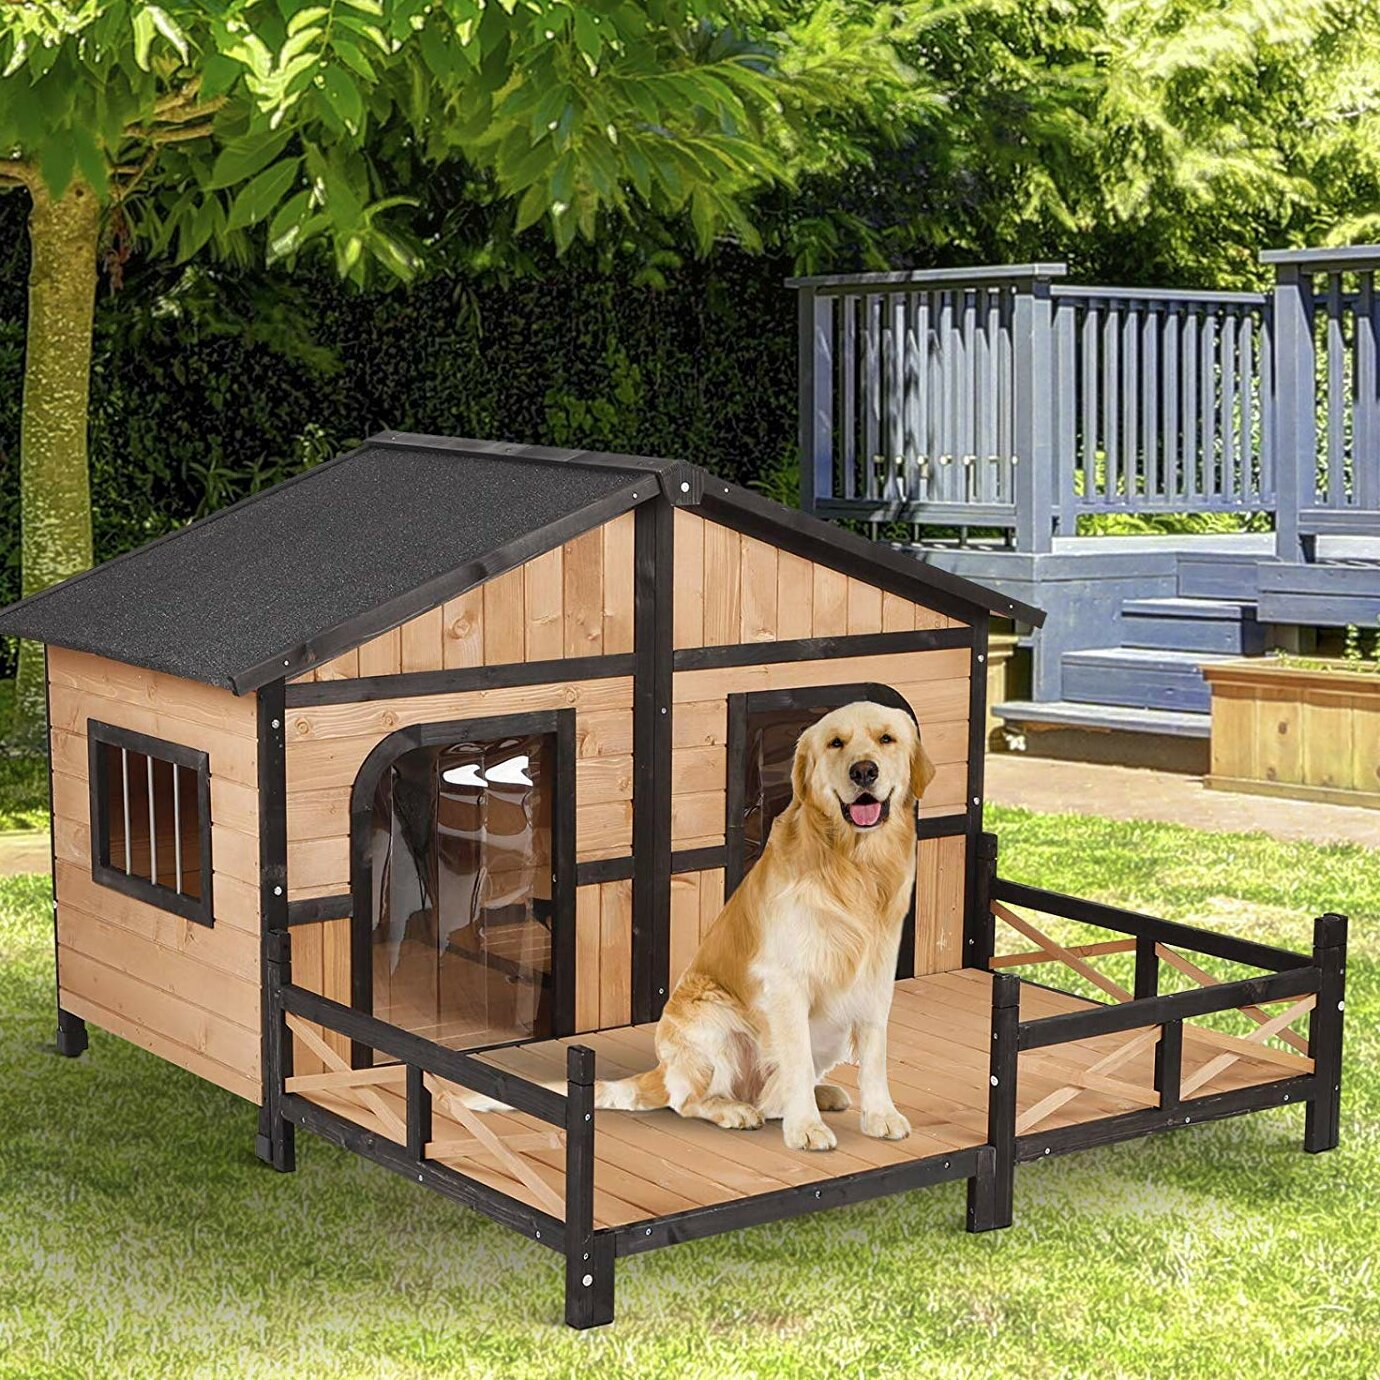 Outdoor Dog House With Fence | Wayfair